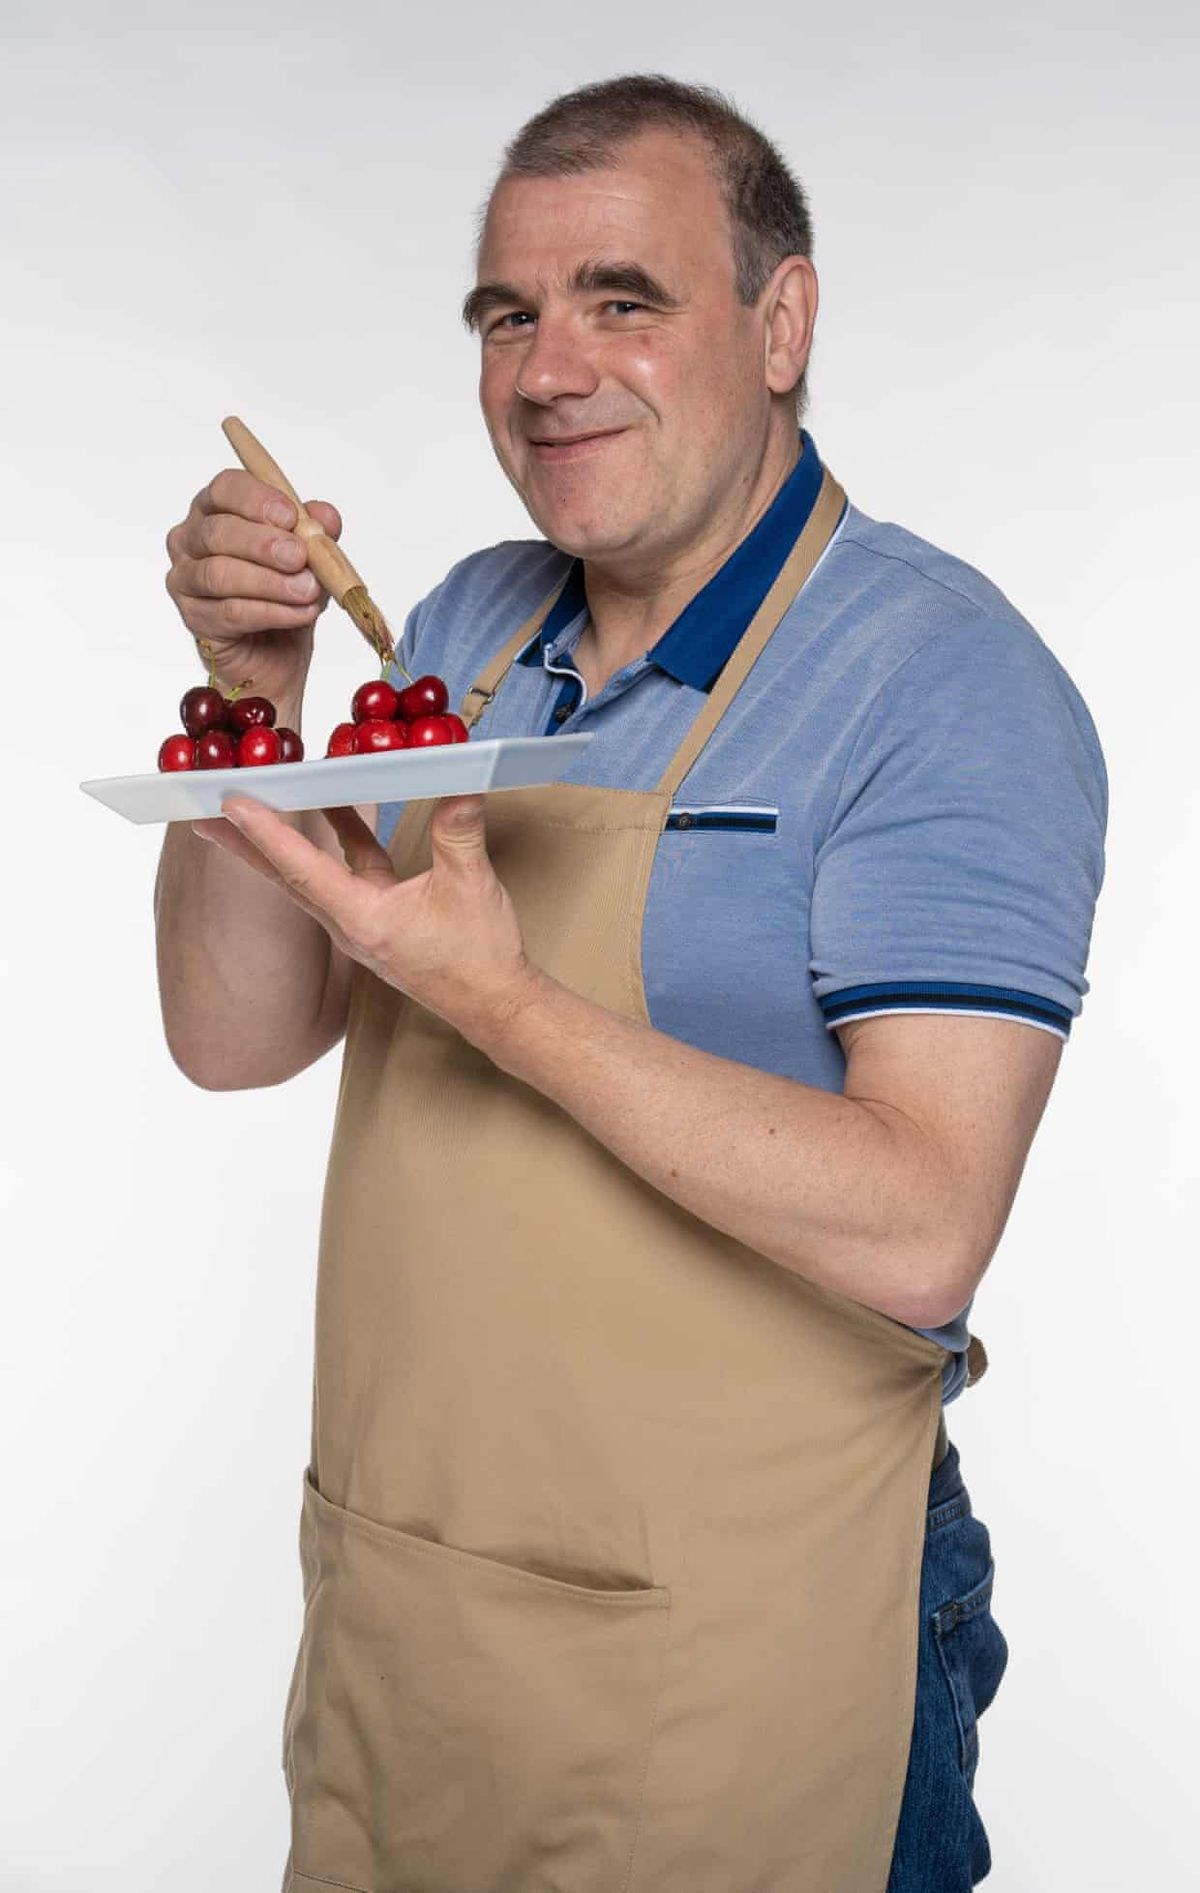 Great British Bake Off 2021 contestant Jurgen, who will compete on GBBO this year